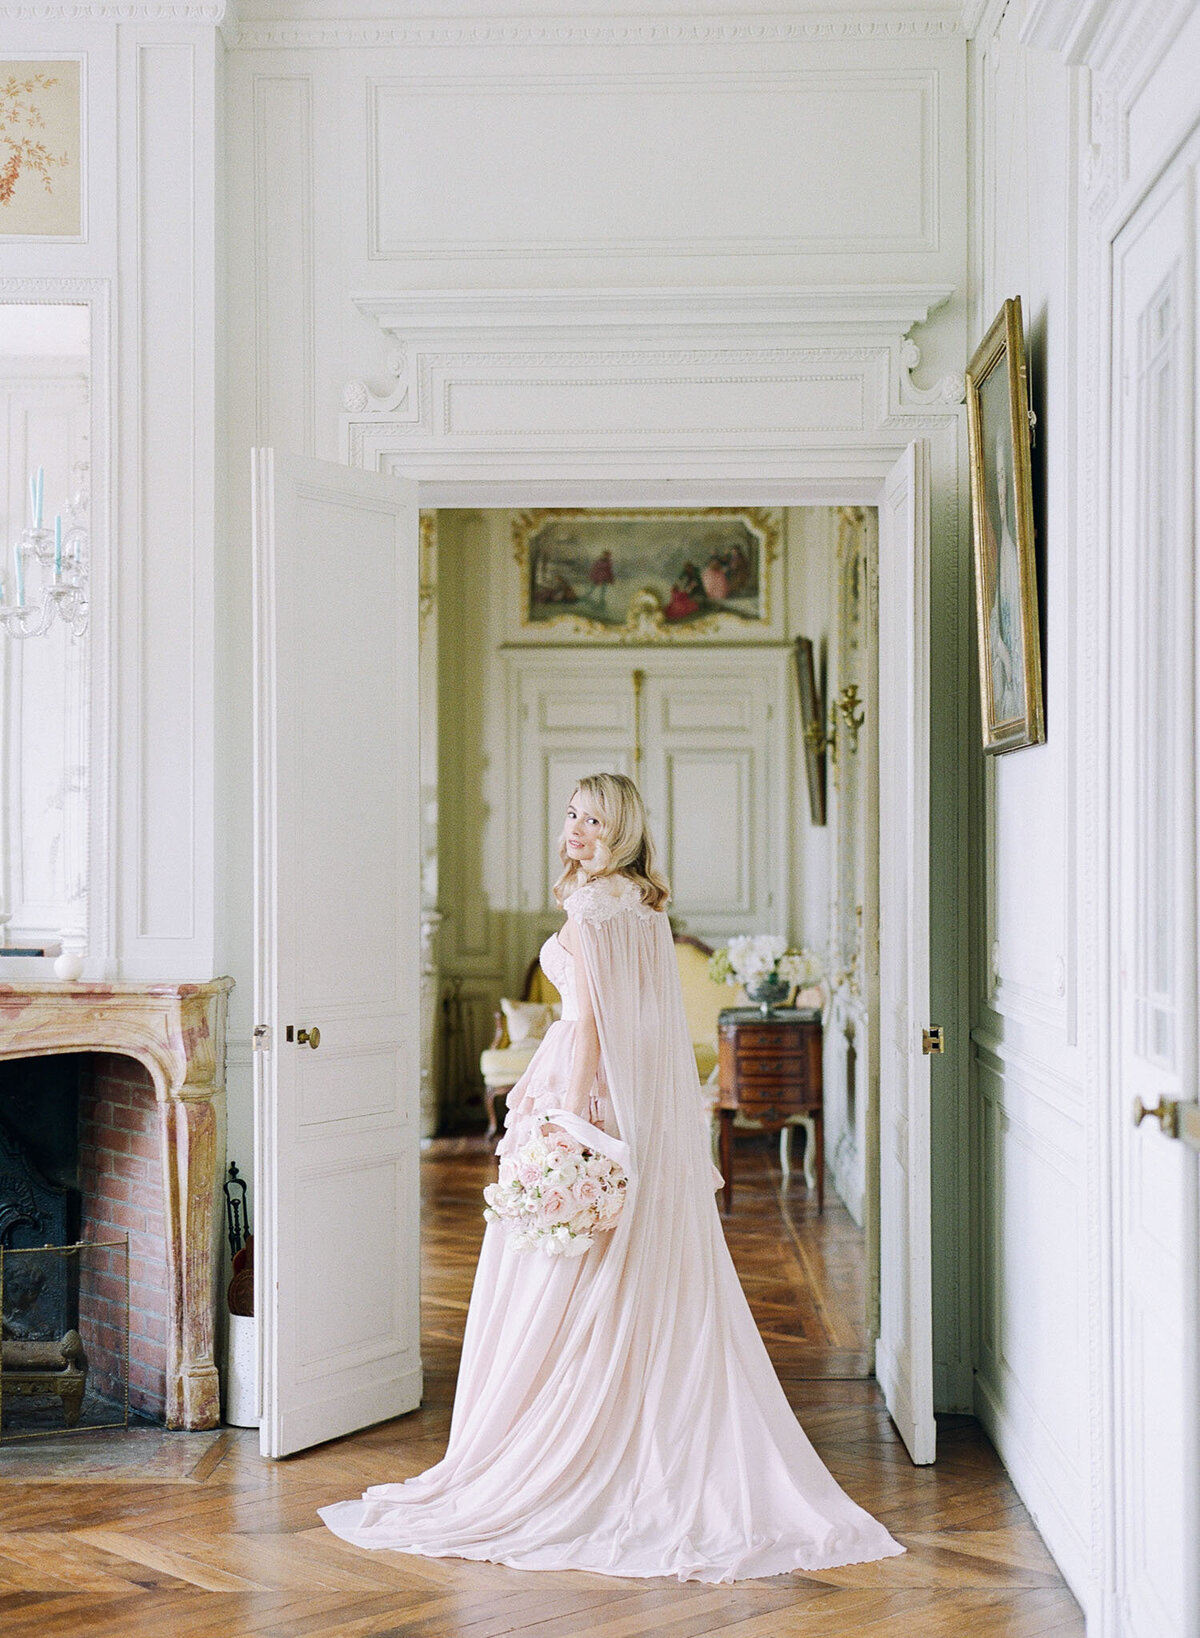 Molly-Carr-Photography-Paris-Wedding-Photographer-84